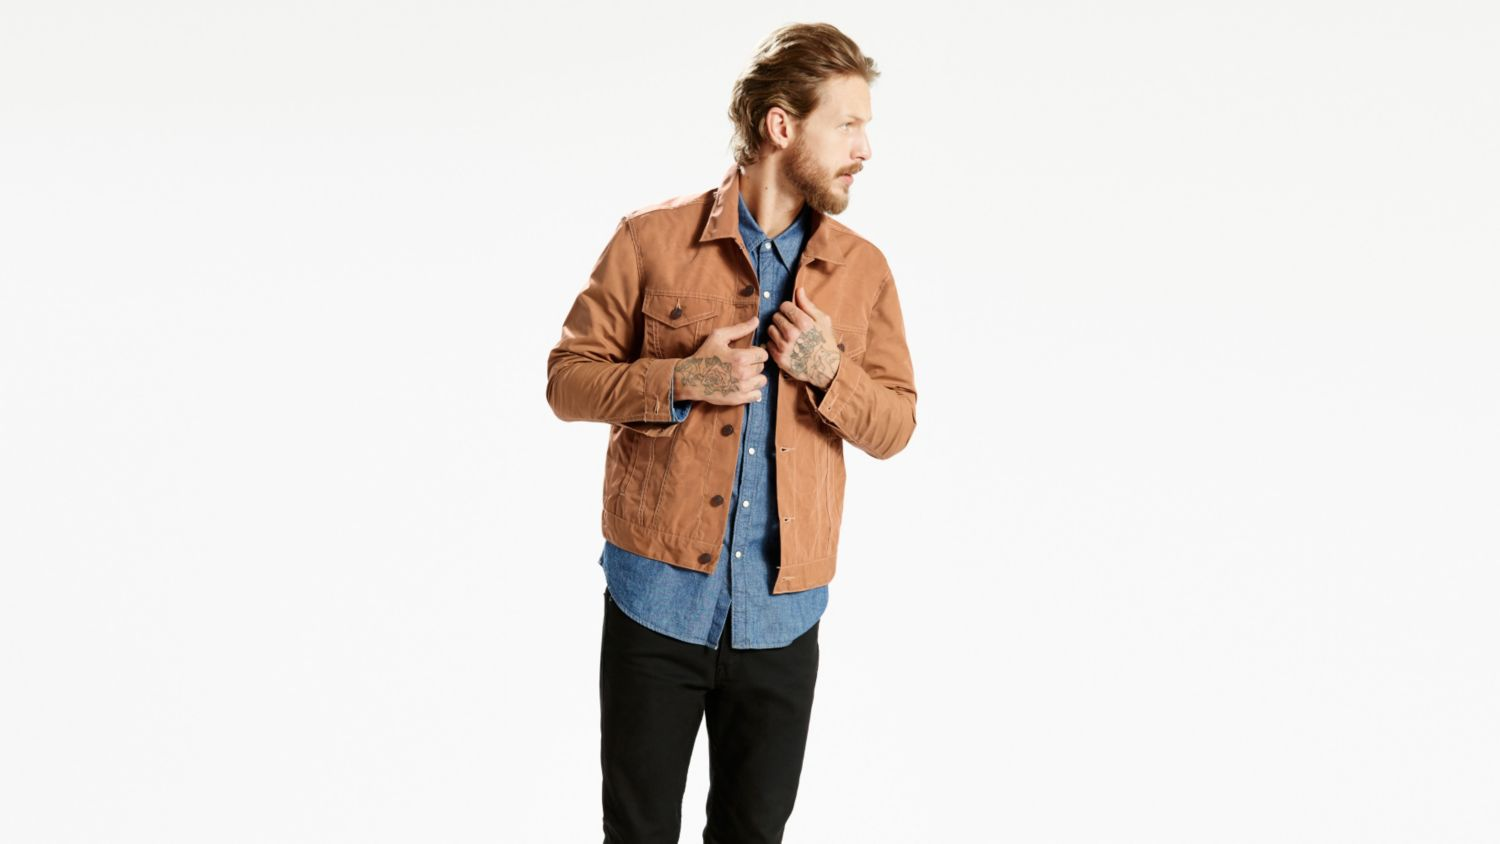 Flannel Lined Coat | Mens Cotton Canvas Jacket | Waxed Trucker Jacket